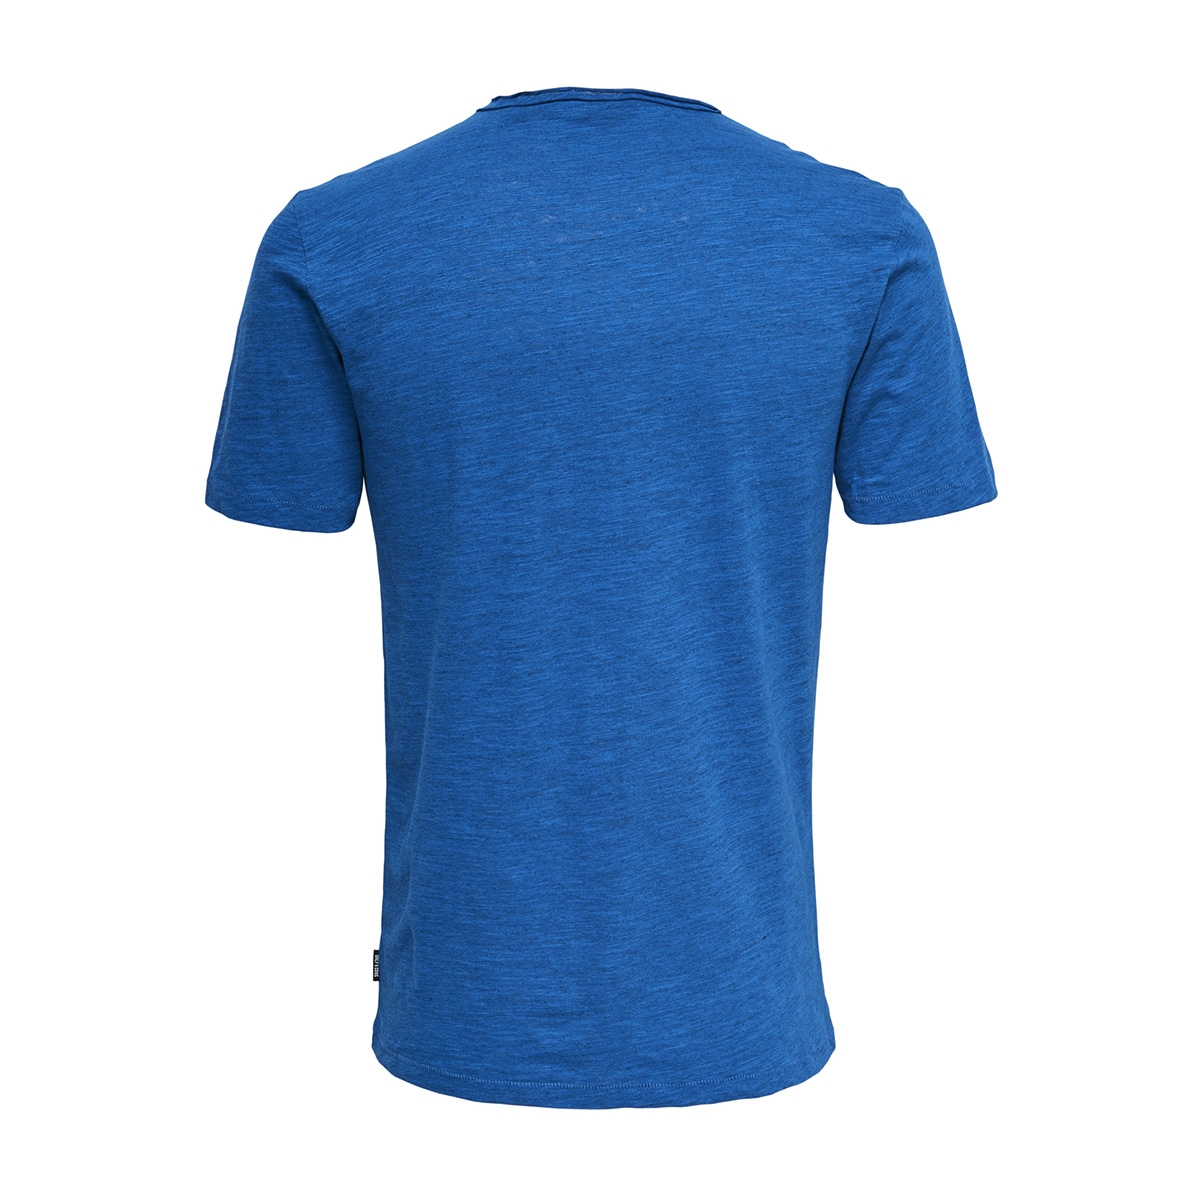 onsalbert new ss tee noos 22005108 only & sons t-shirt imperial blue